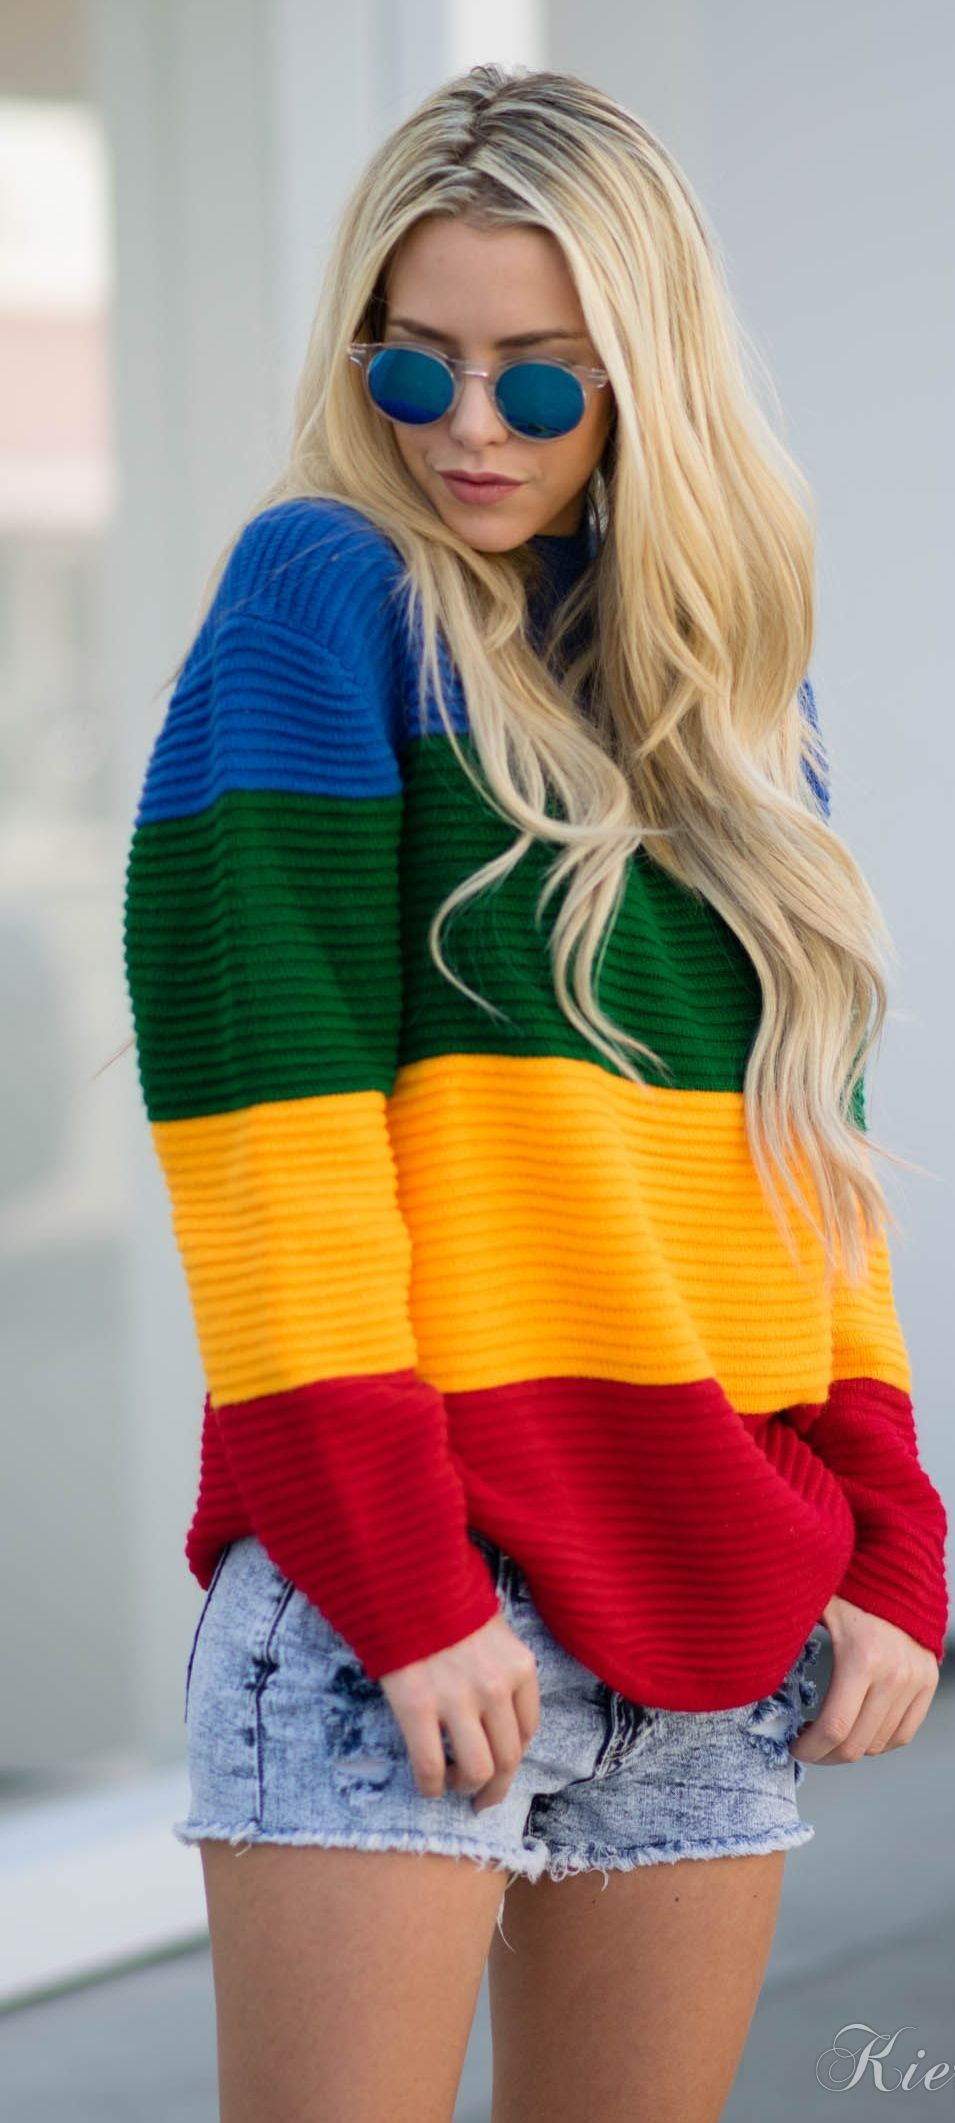 Crayon Sweater Outfit Idea